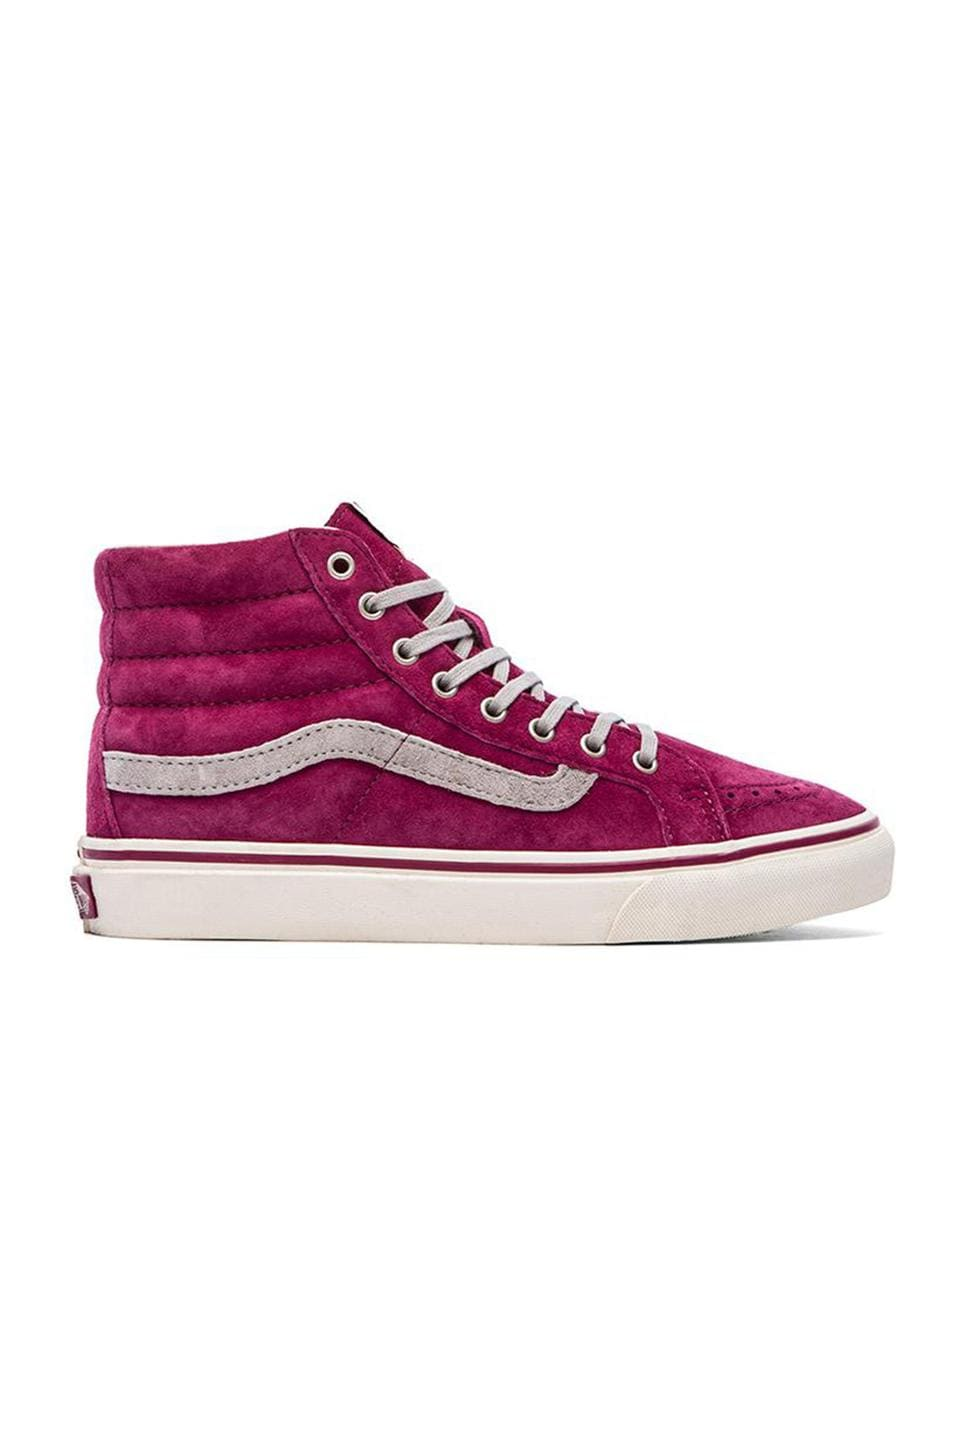 Vans SK8-Hi Slim Sneaker in Wine & Marshmallow